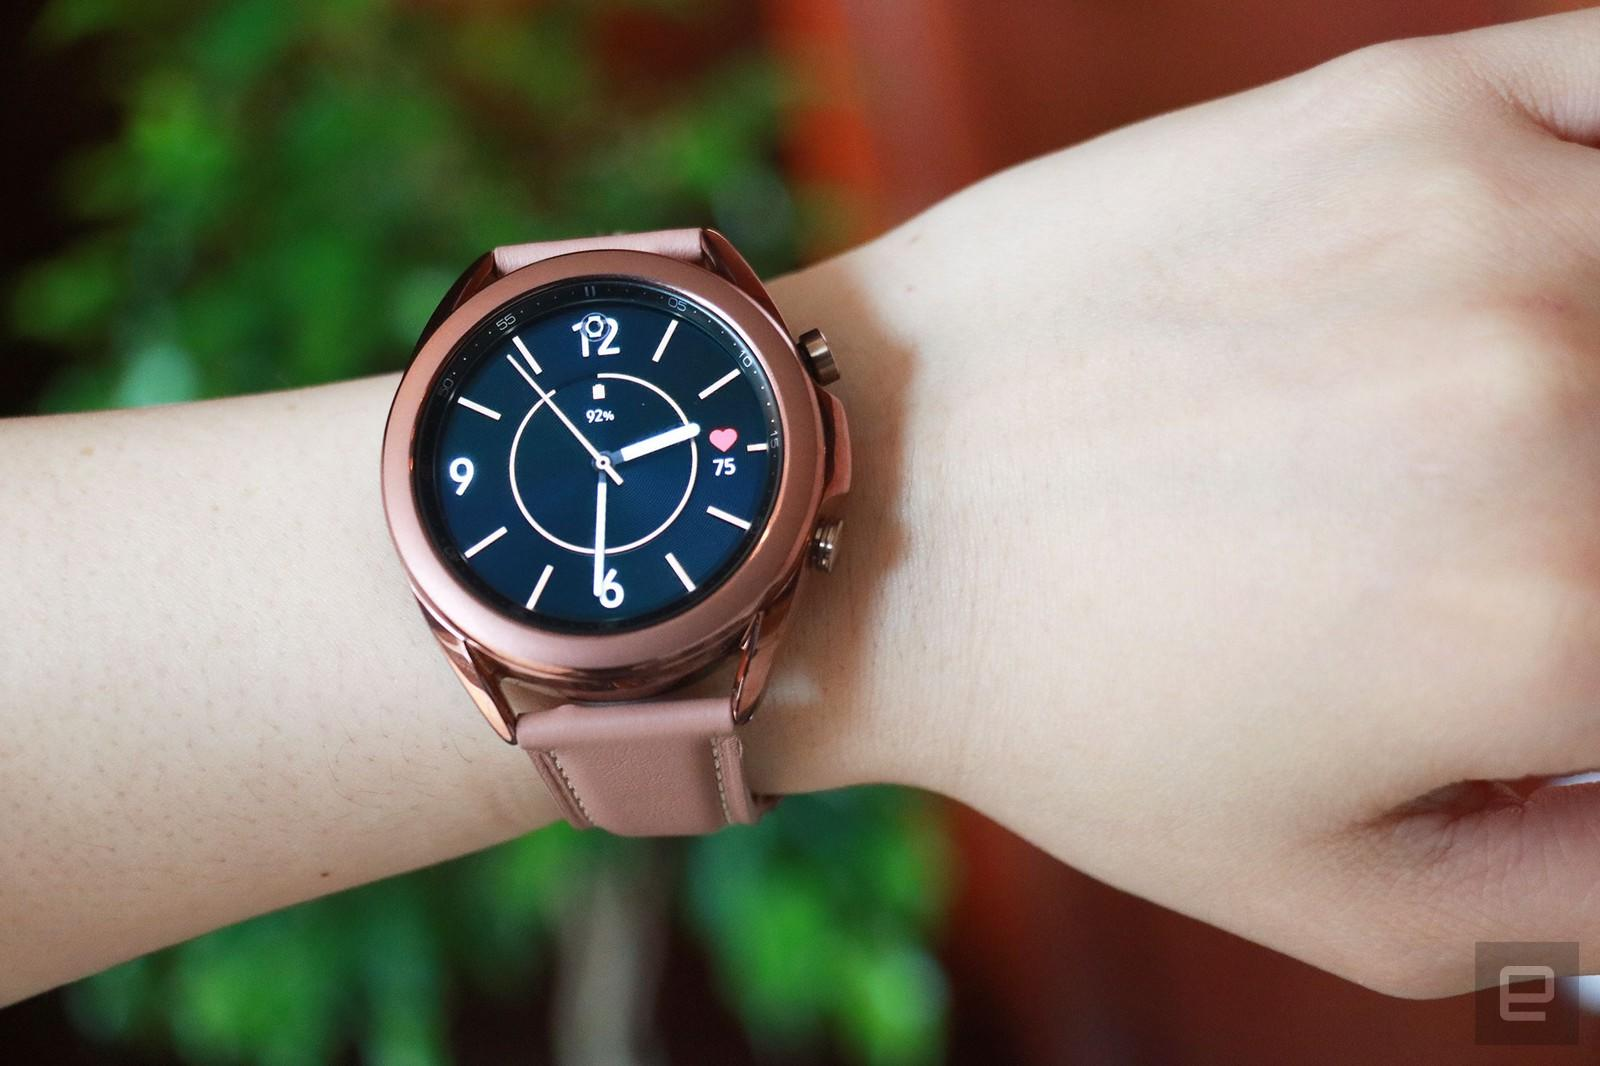 Samsung's Galaxy Watch 3 models are down to all-time lows at Amazon - Engadget